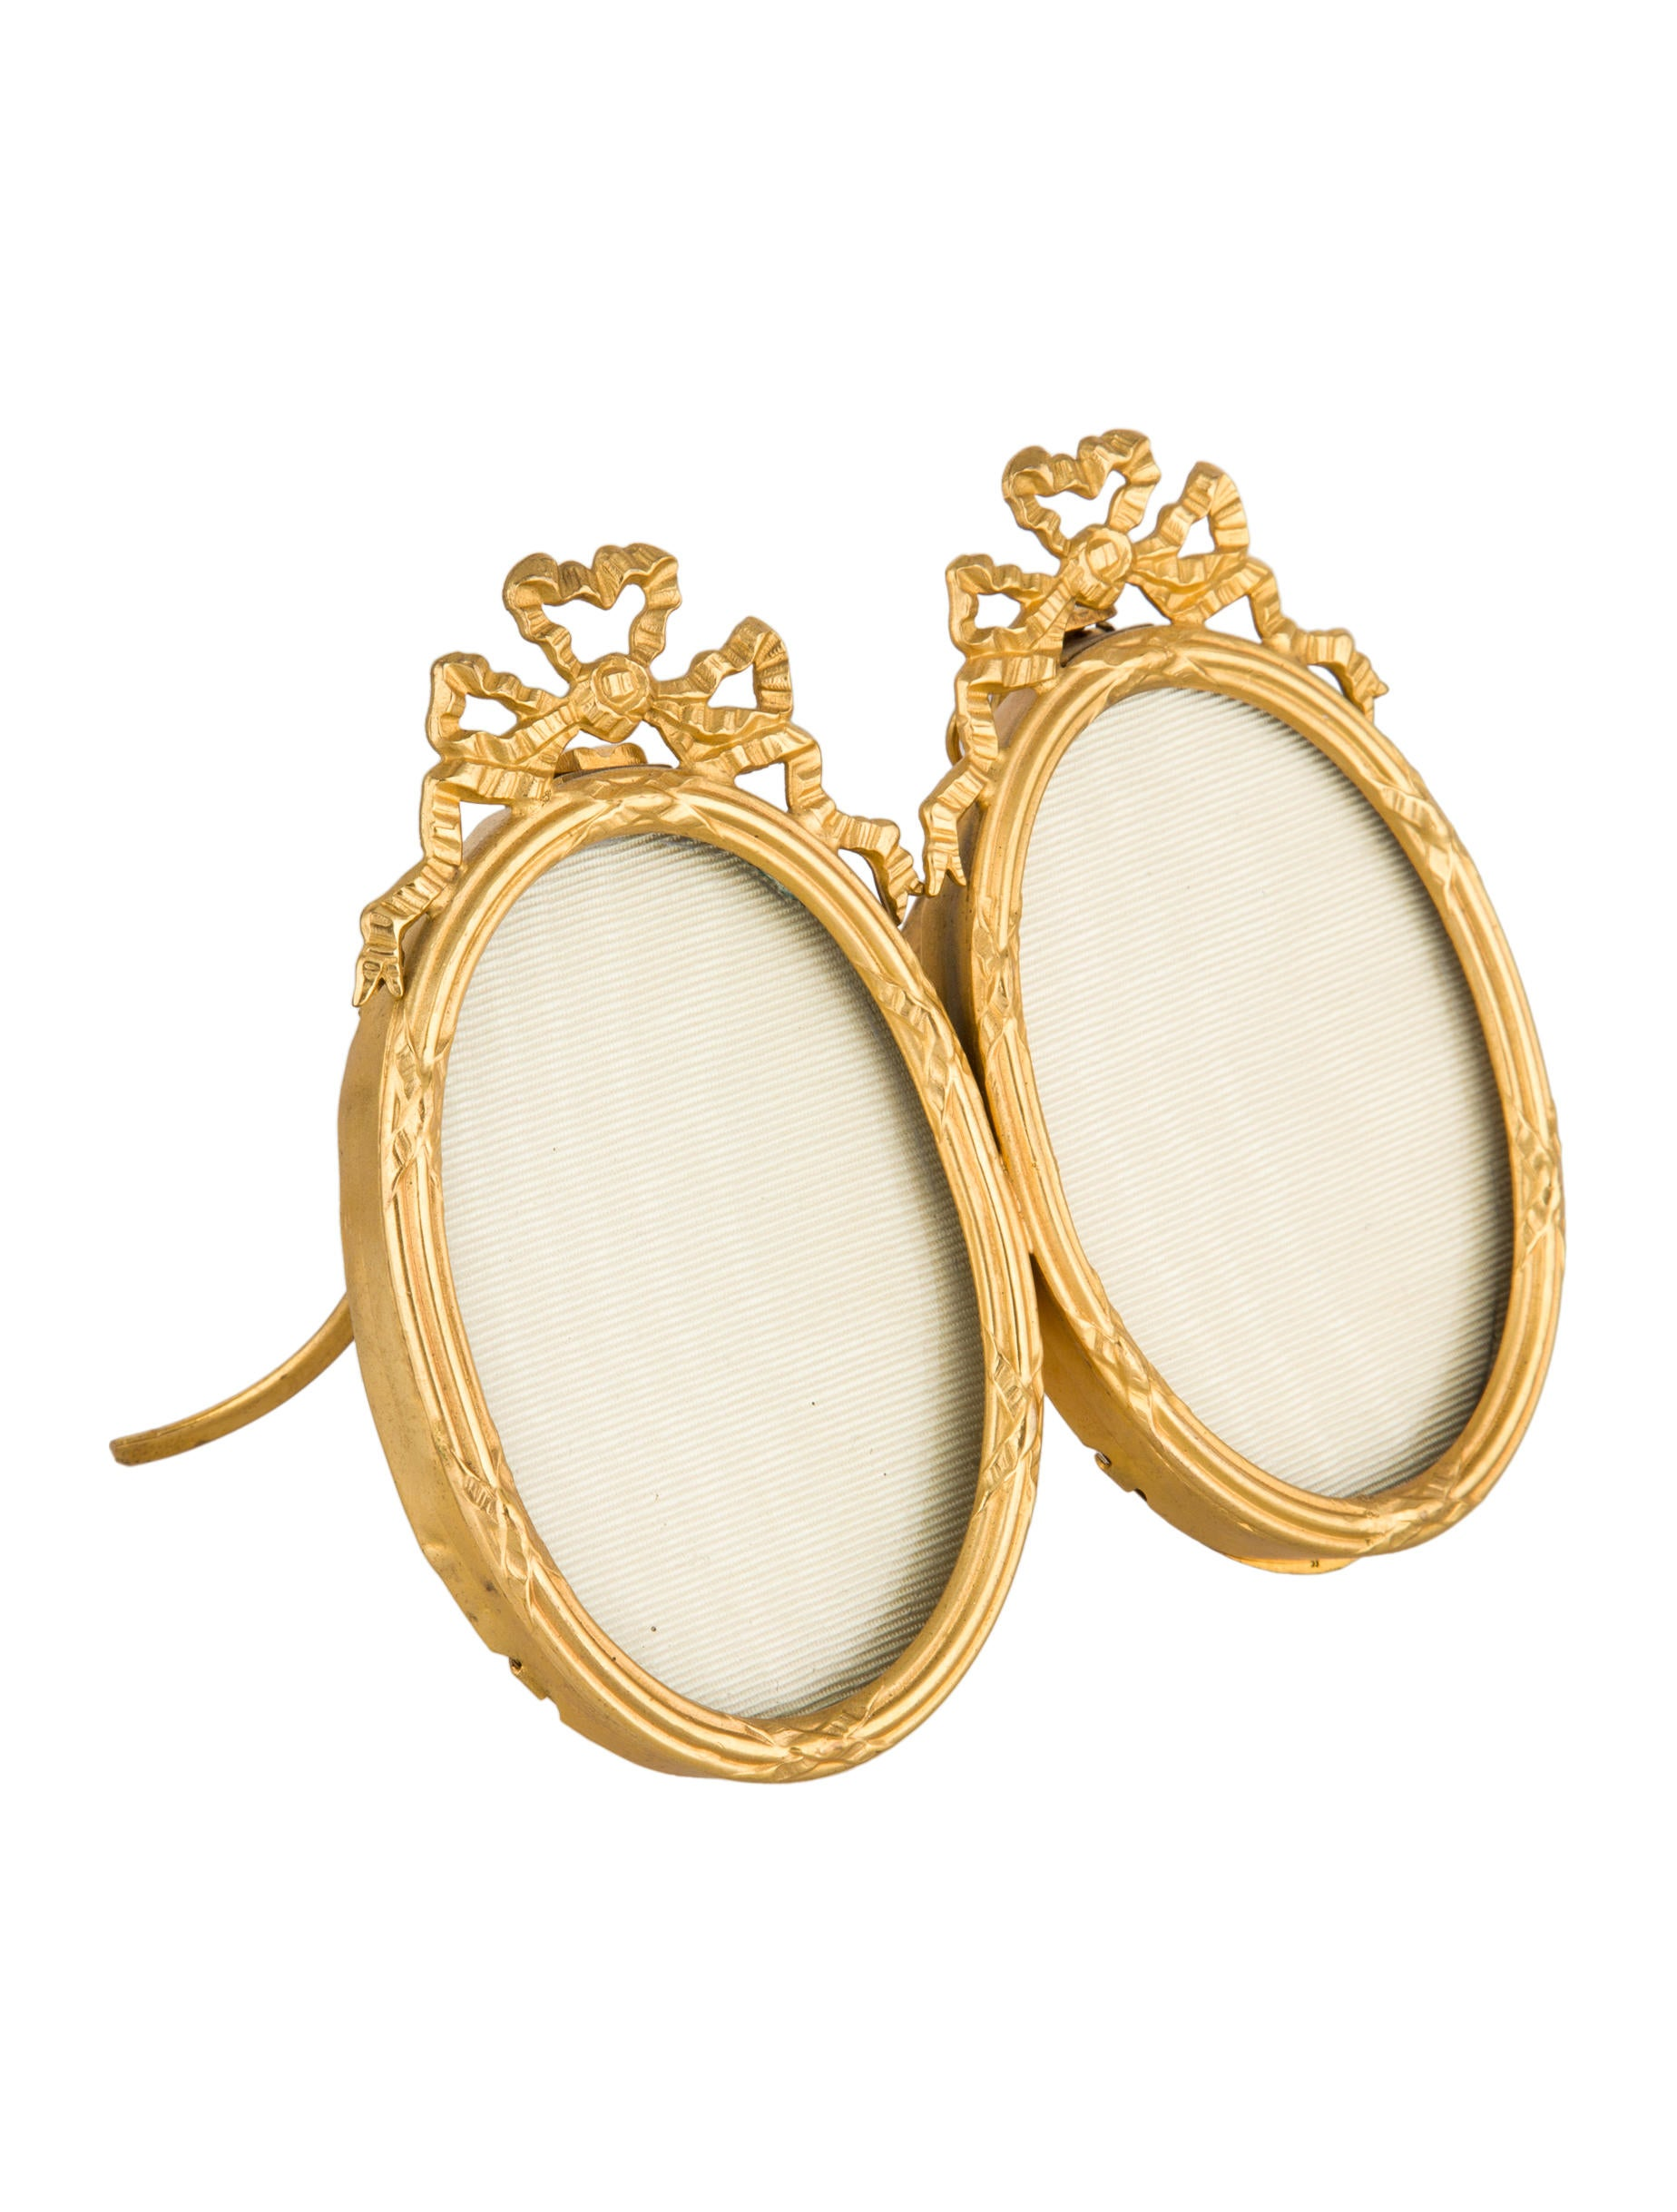 Gilt Oval Picture Frame Decor And Accessories  : DECOR211792enlarged from www.therealreal.com size 1848 x 2438 jpeg 264kB